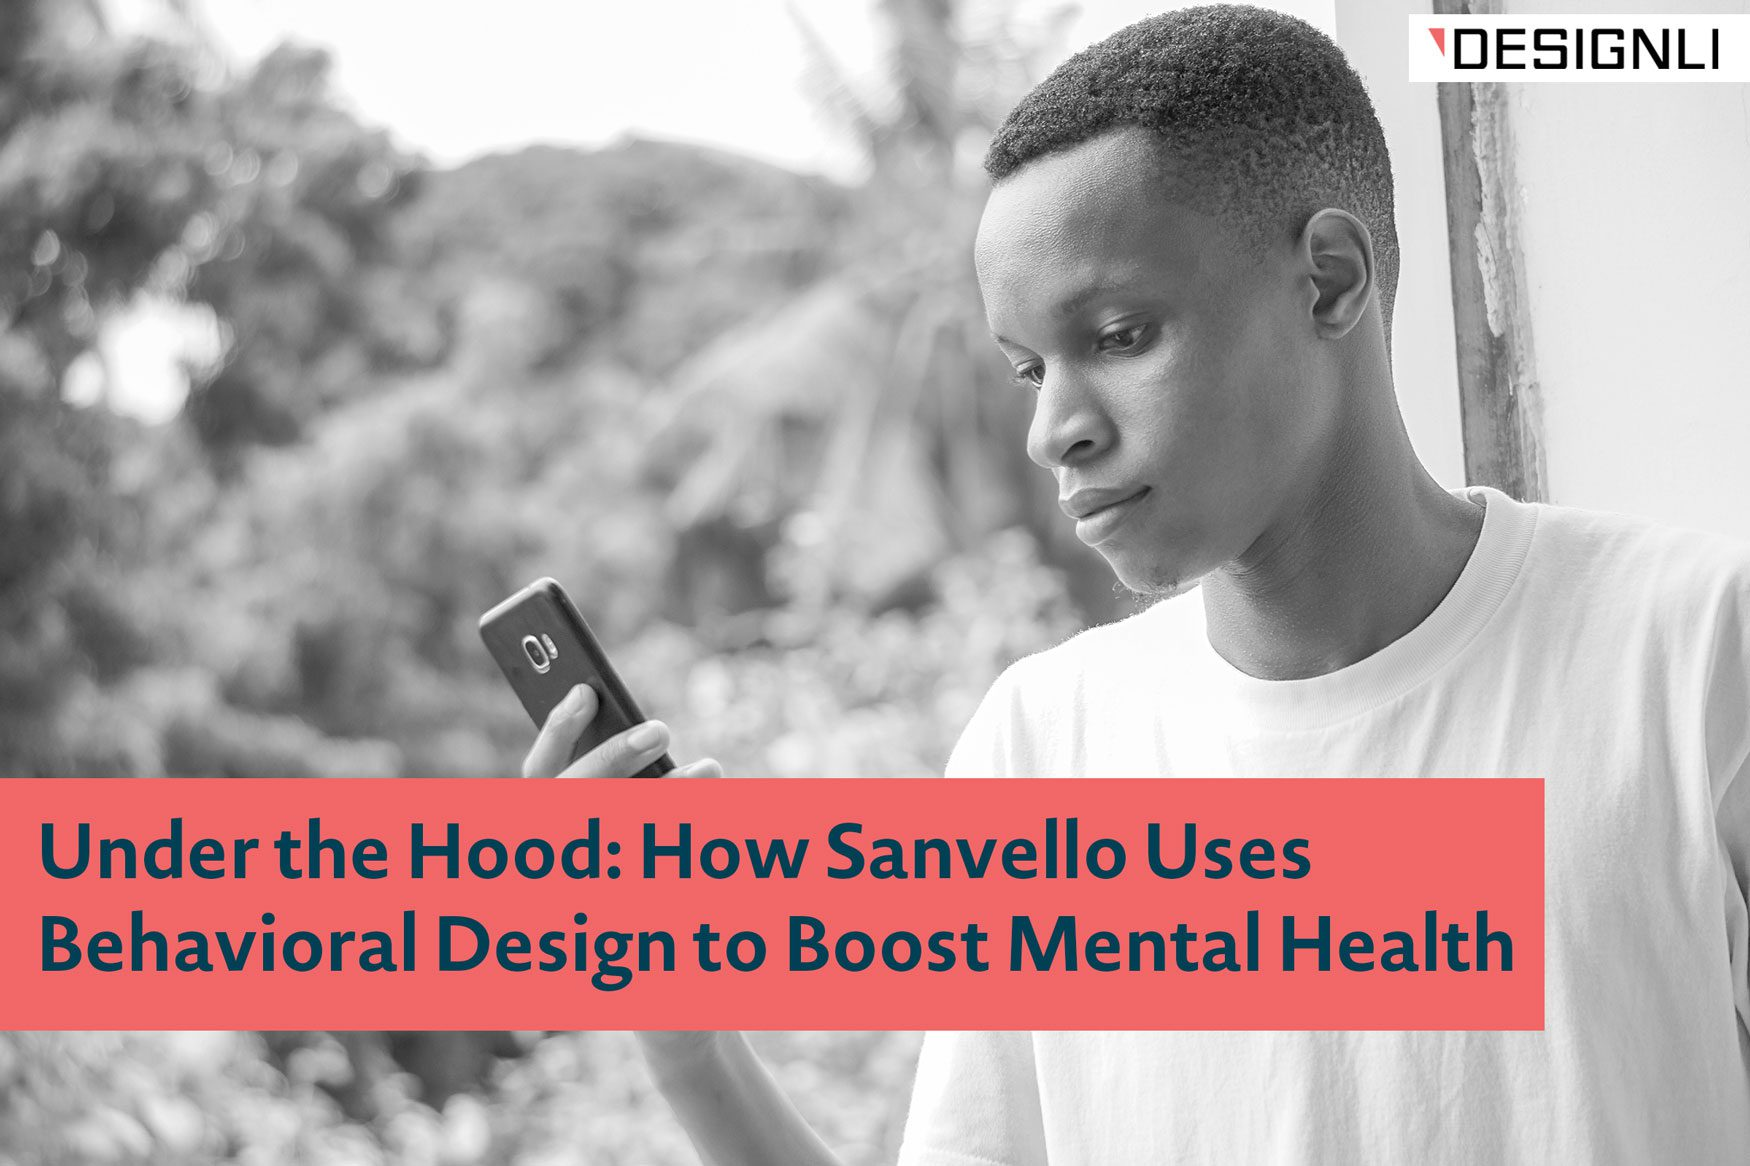 Sanvello Uses Behavioral Design